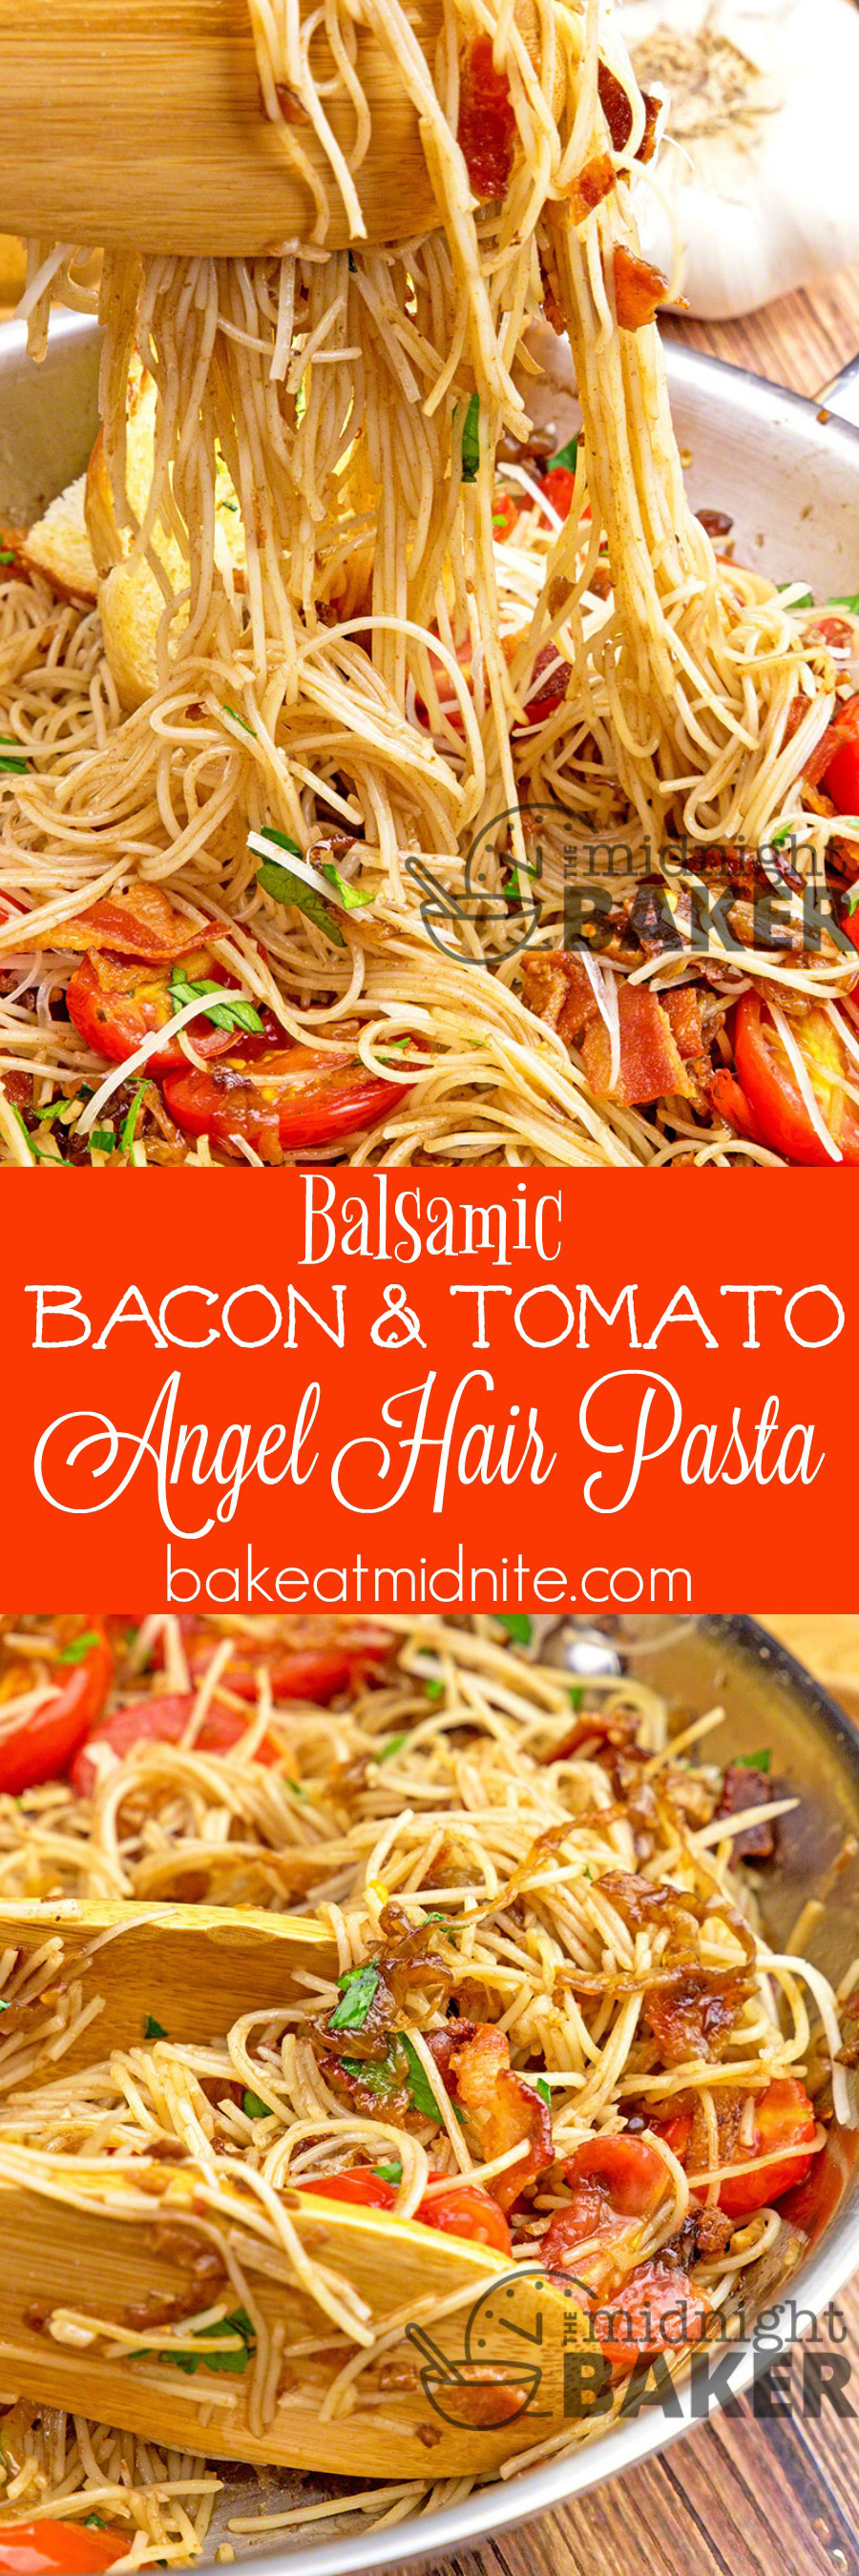 Light angel hair pasta with caramelized onion, garlic, bacon and tomato dressed in a slightly tangy balsamic garlic sauce is a quick and satisfying meal.